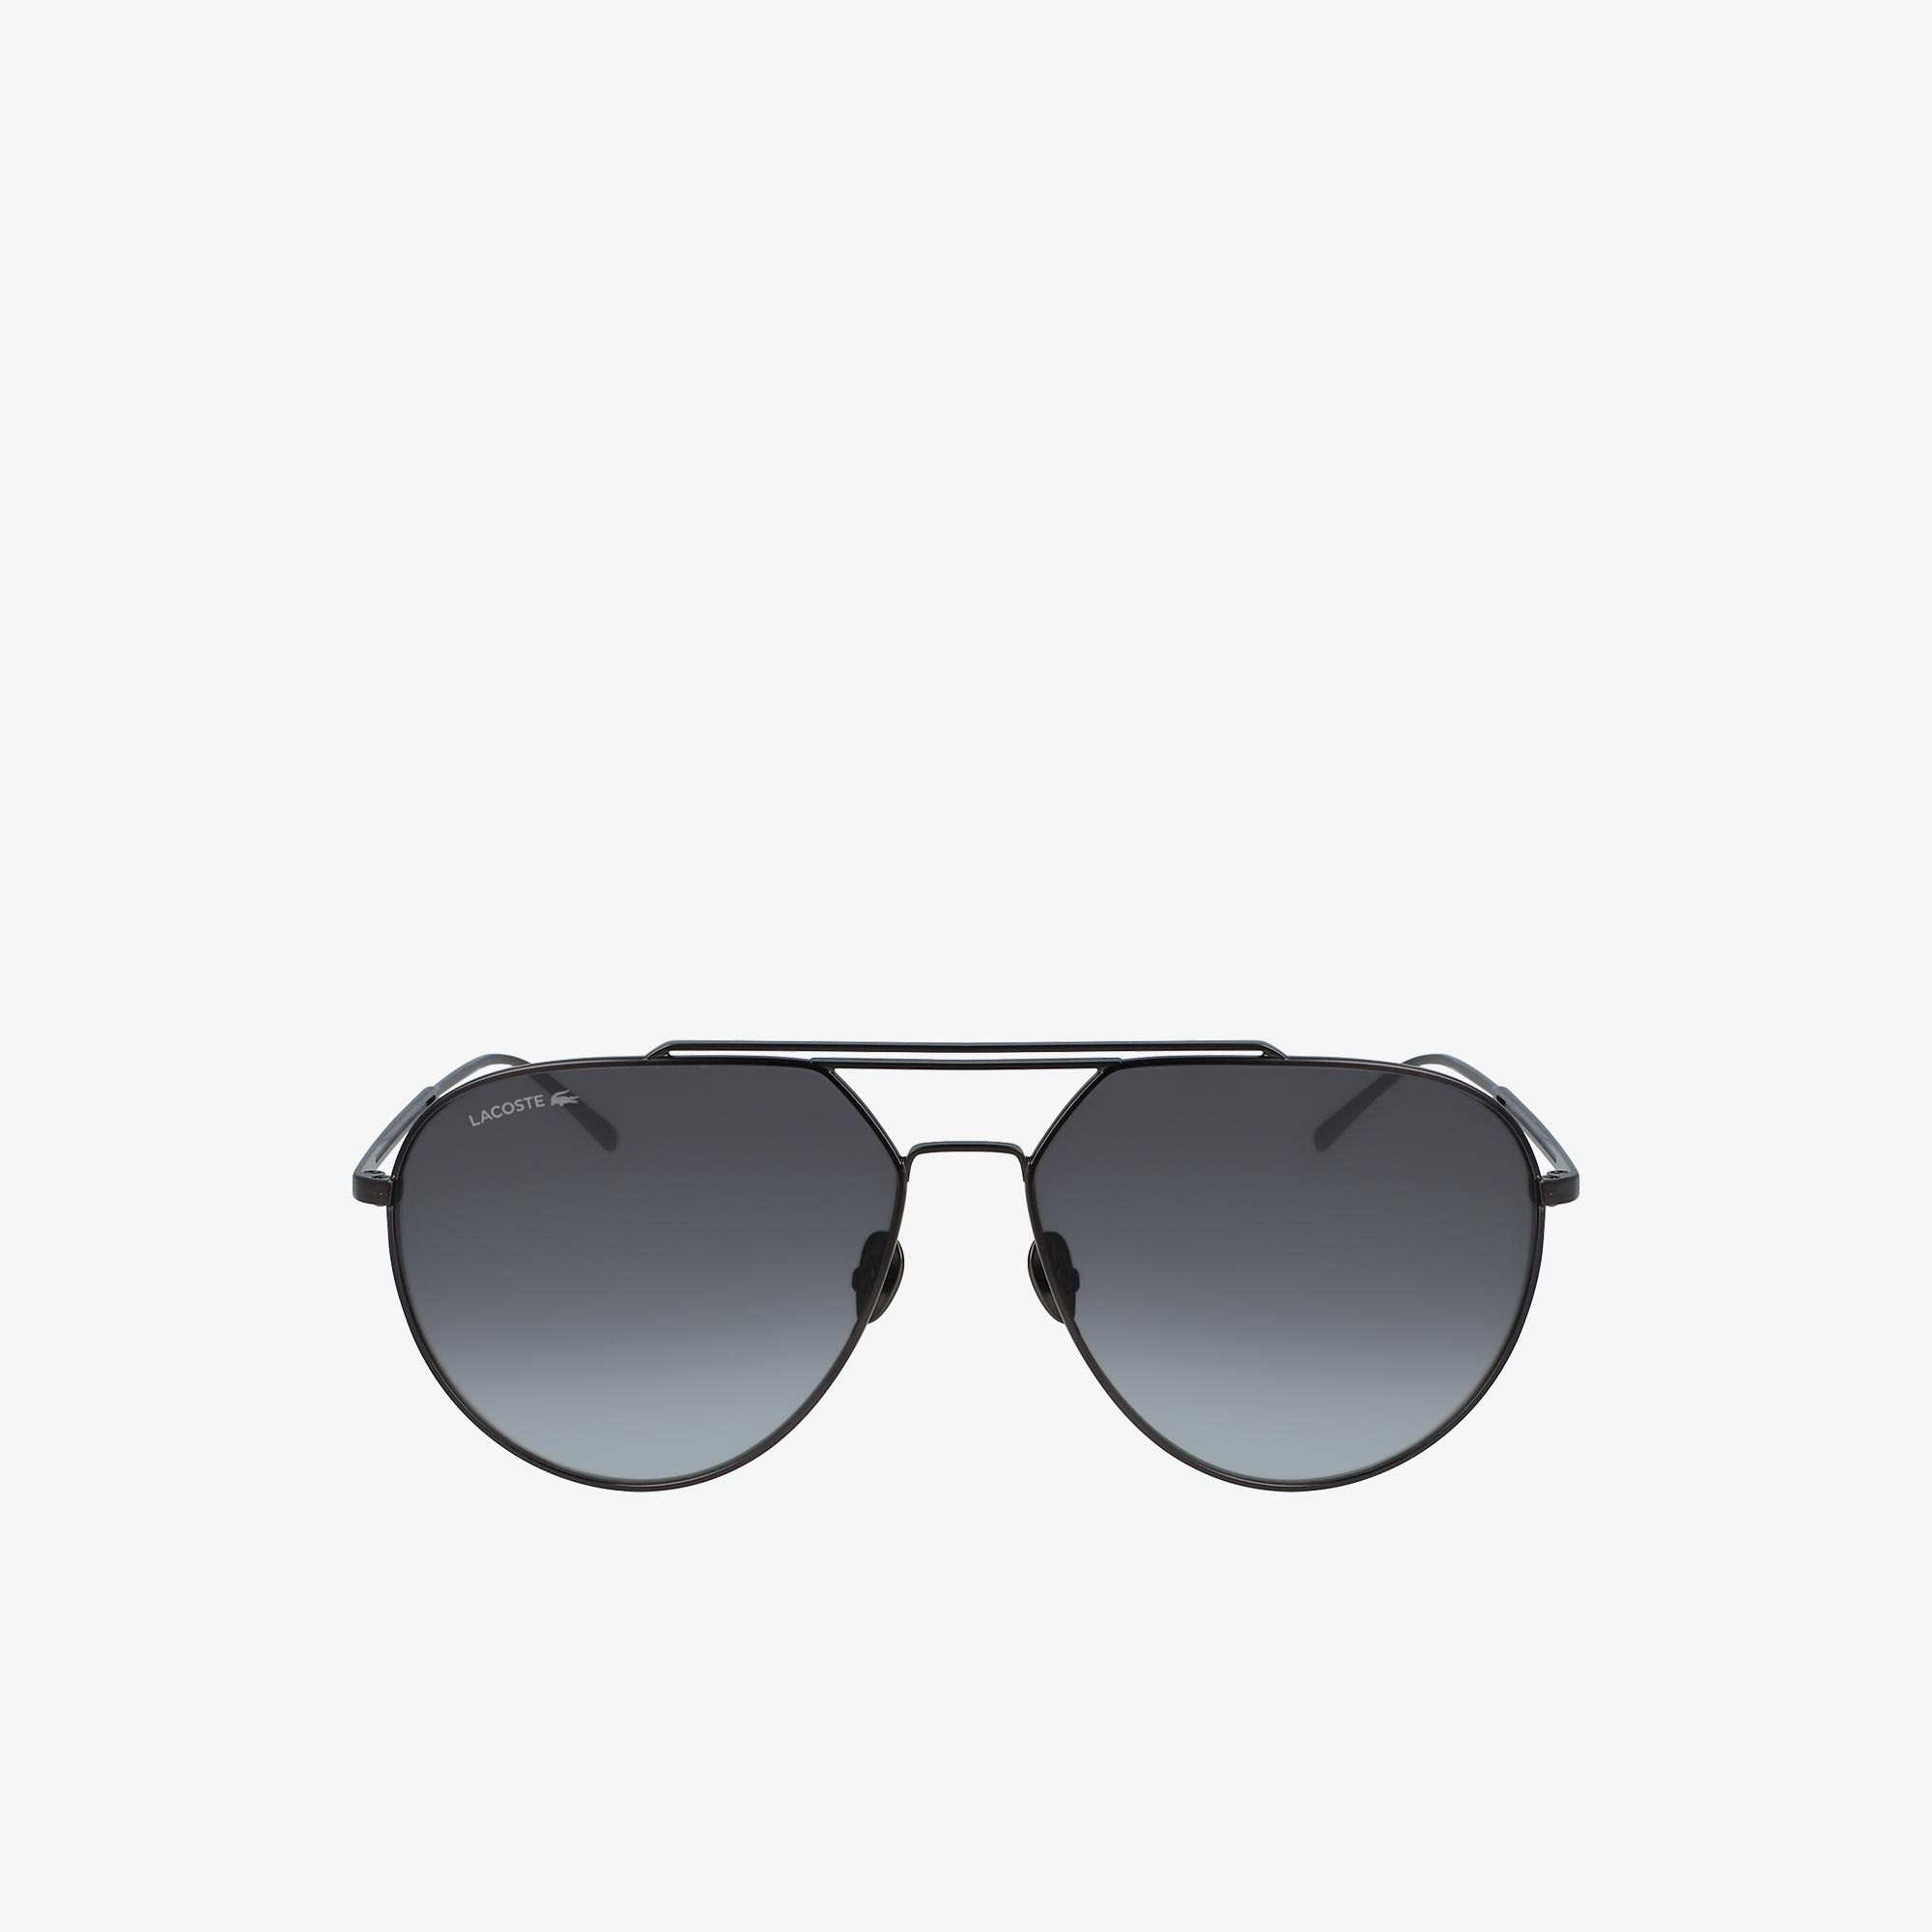 Paris Collection-Sonnenbrille mit Pilot-Metallrahmen